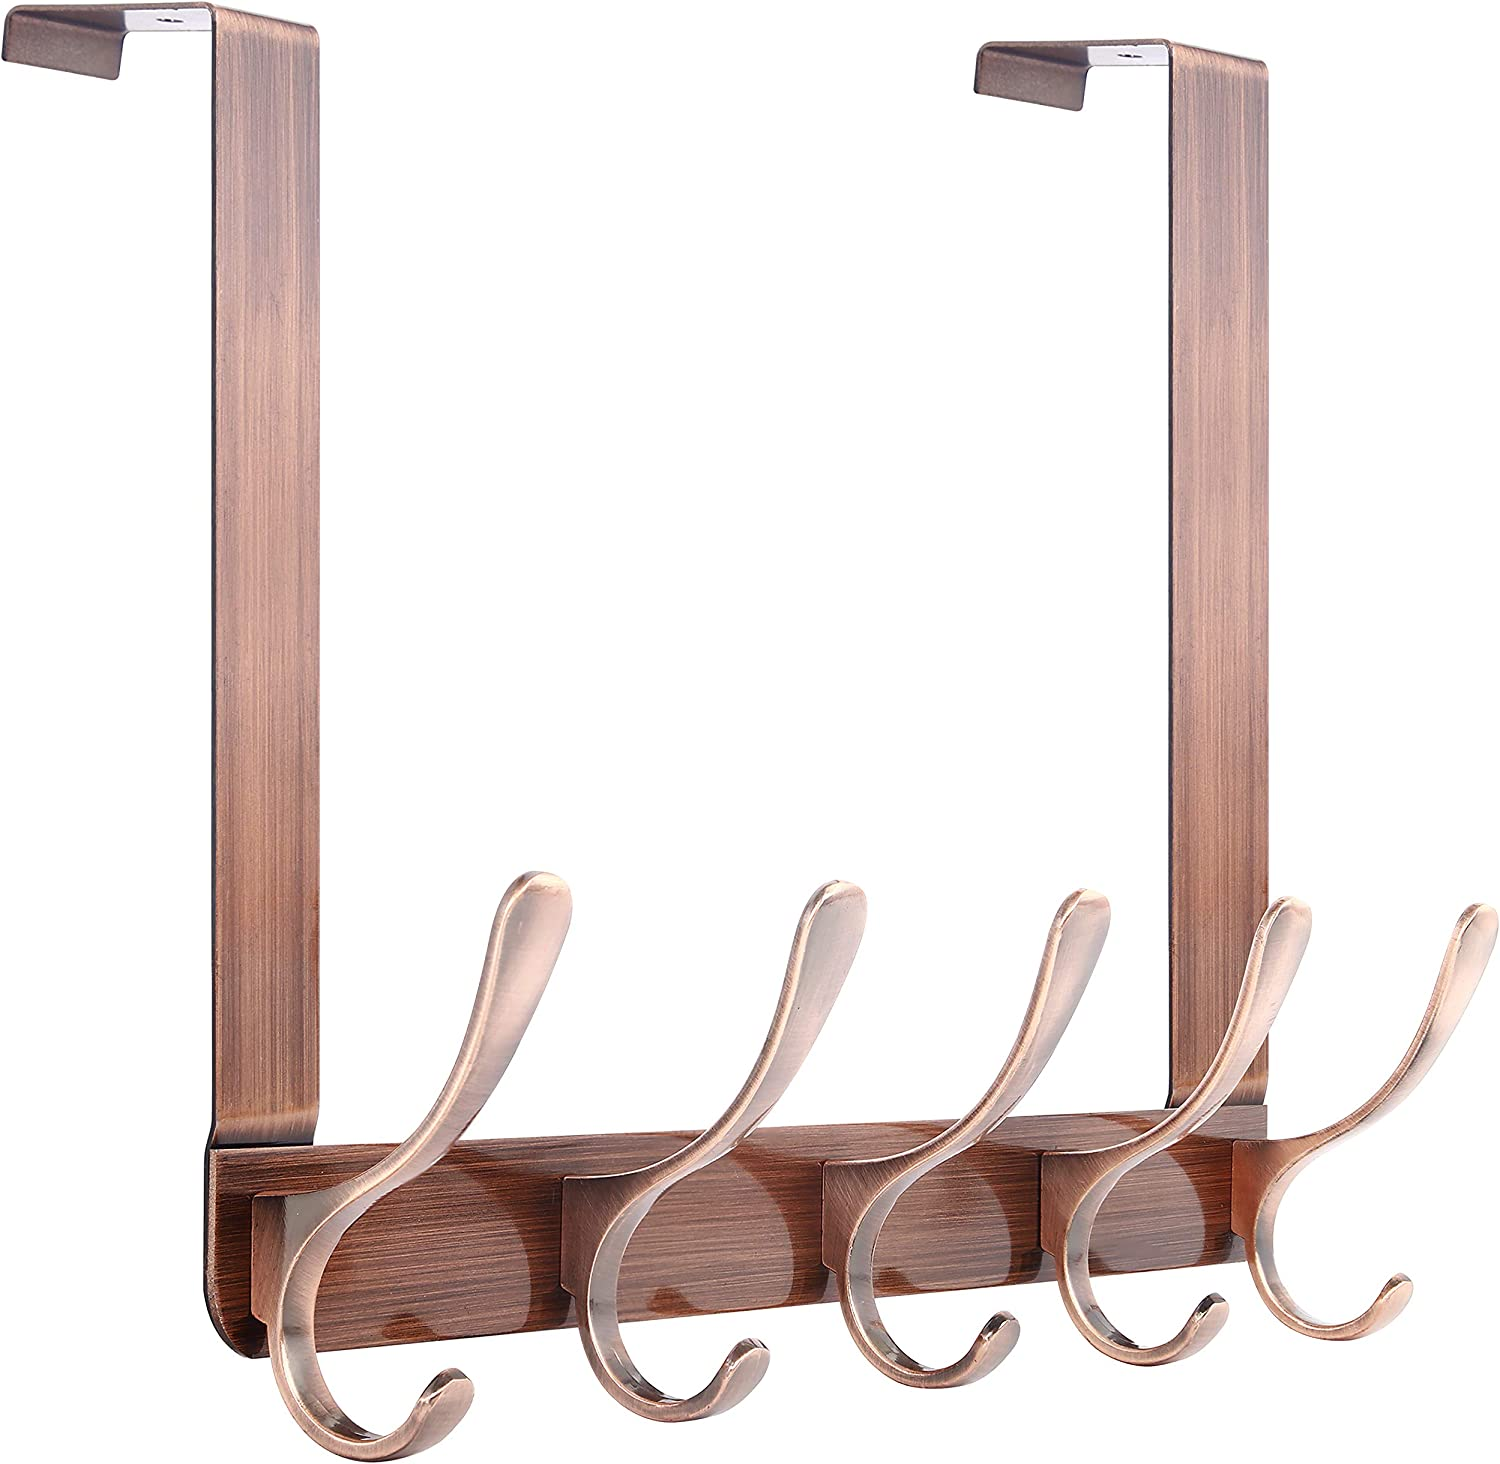 Towel Over The Door Towel Rack with 6 Removable Coat Hooks for Hanging Clothes Robes Over Door Hooks for Bathroom Bedroom Purse